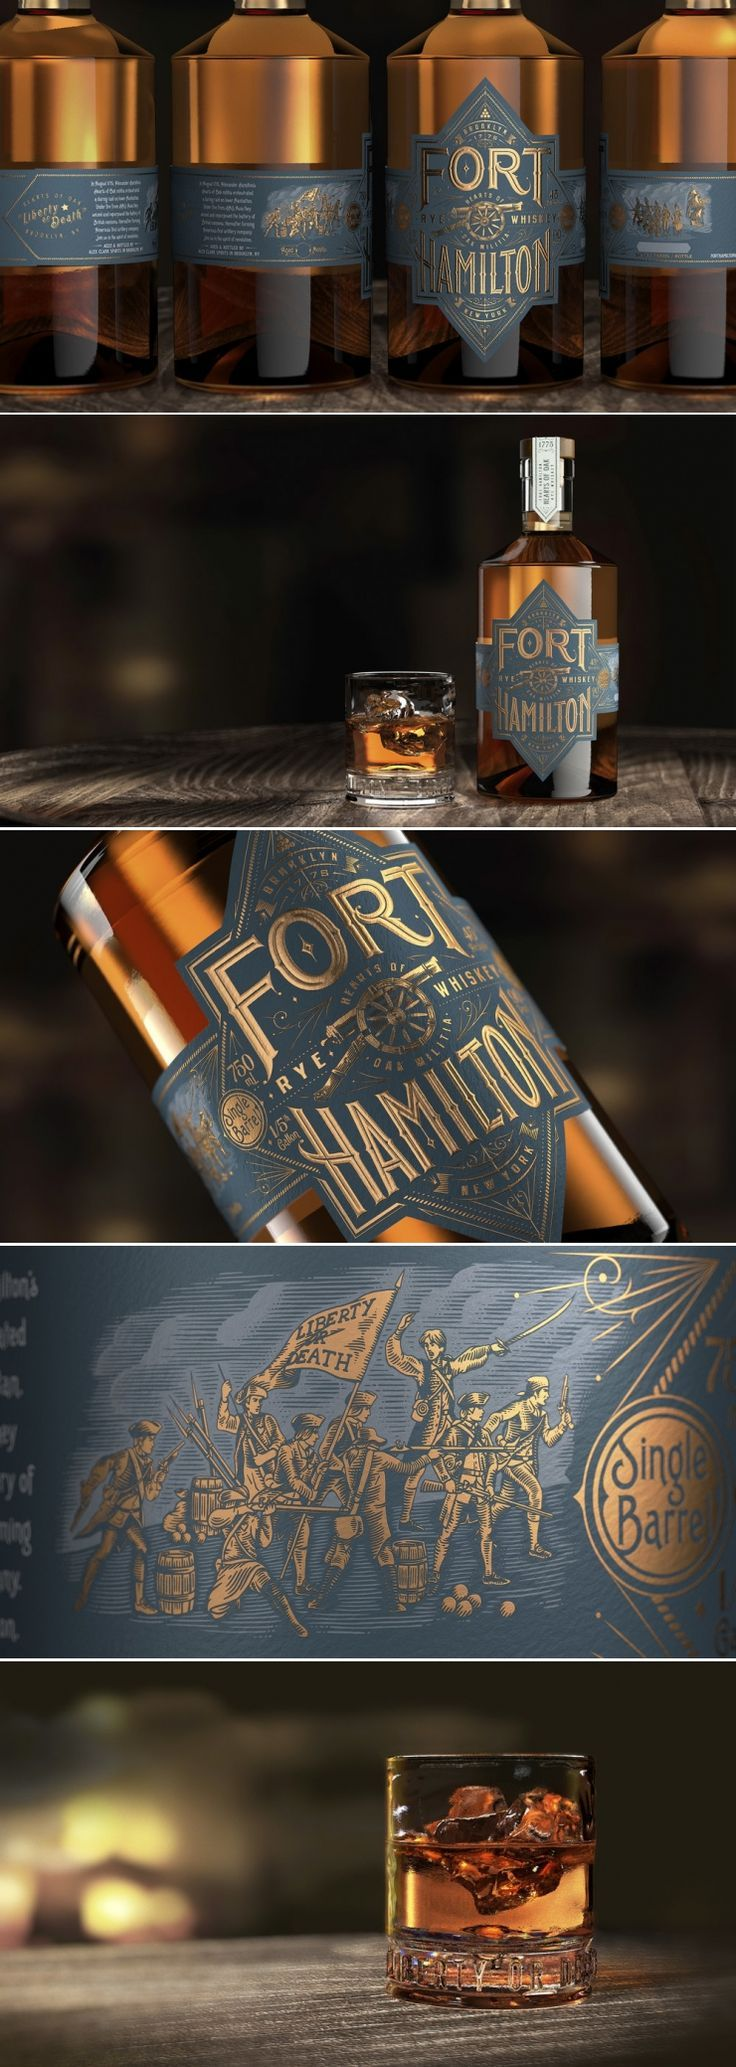 Photo of Check Out the Sophisticated Look of Fort Hamilton Whiskey